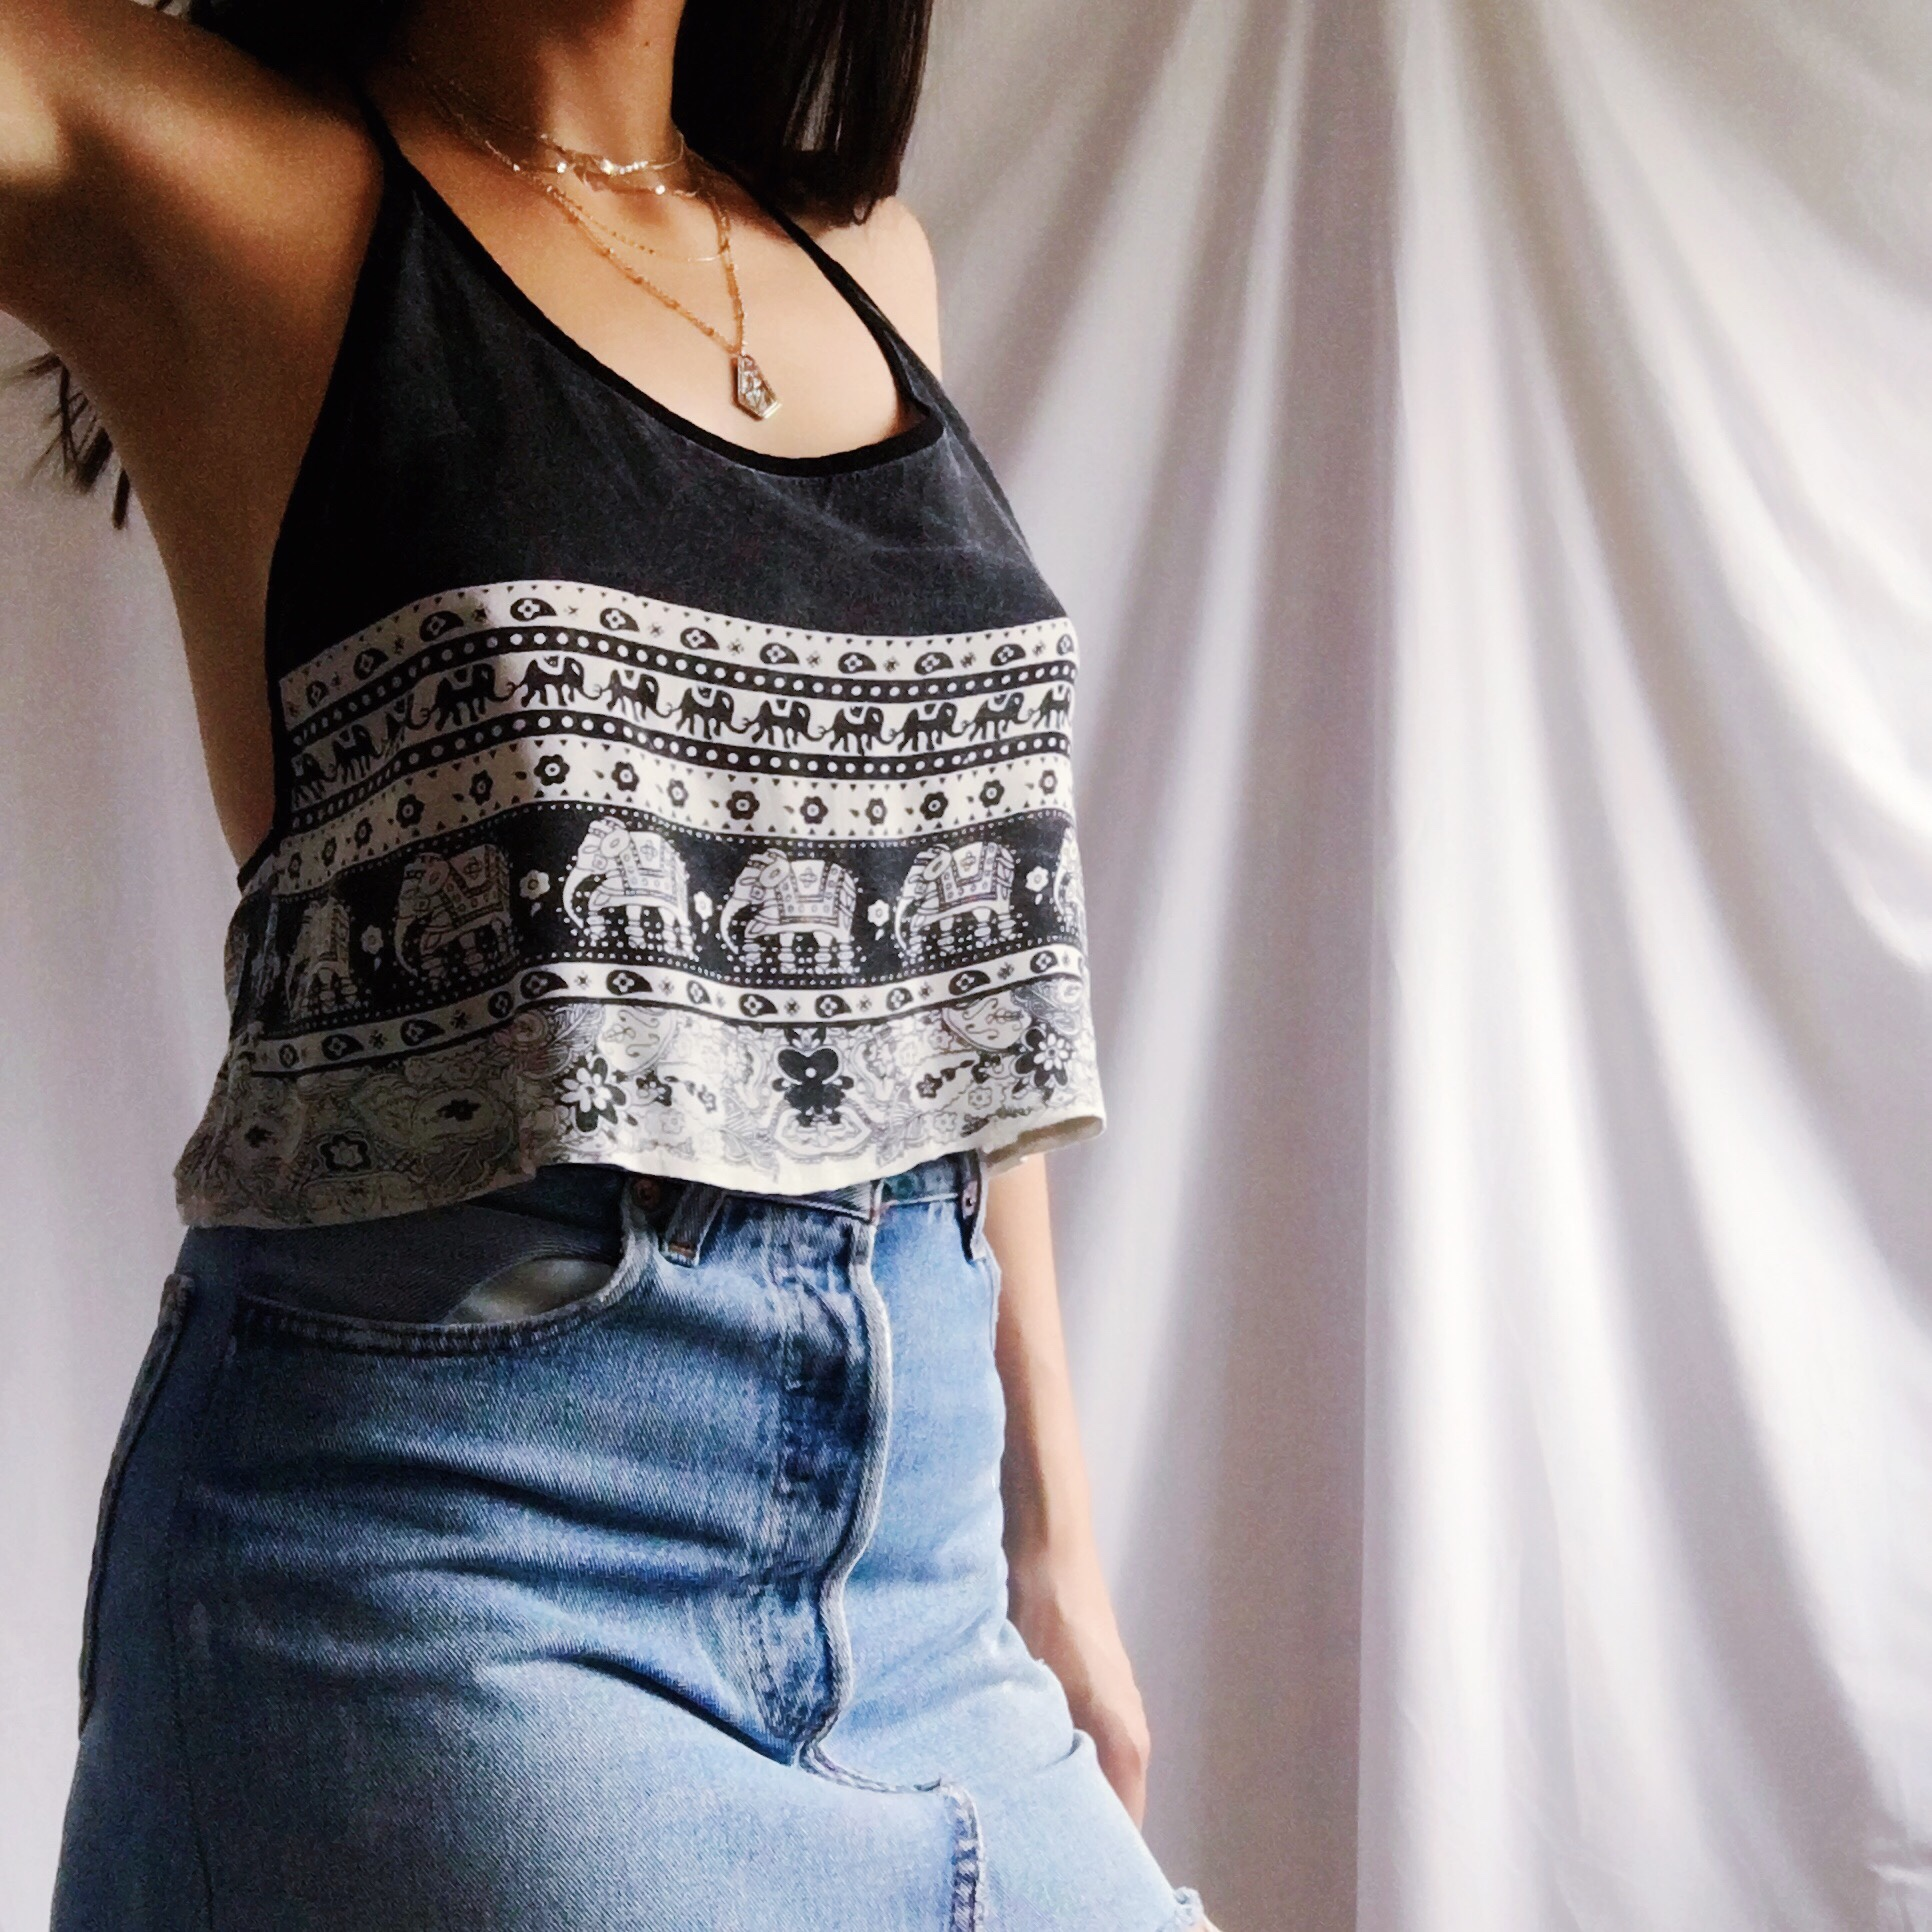 Kiss the Sky festival style crop top. Worn washed Depop